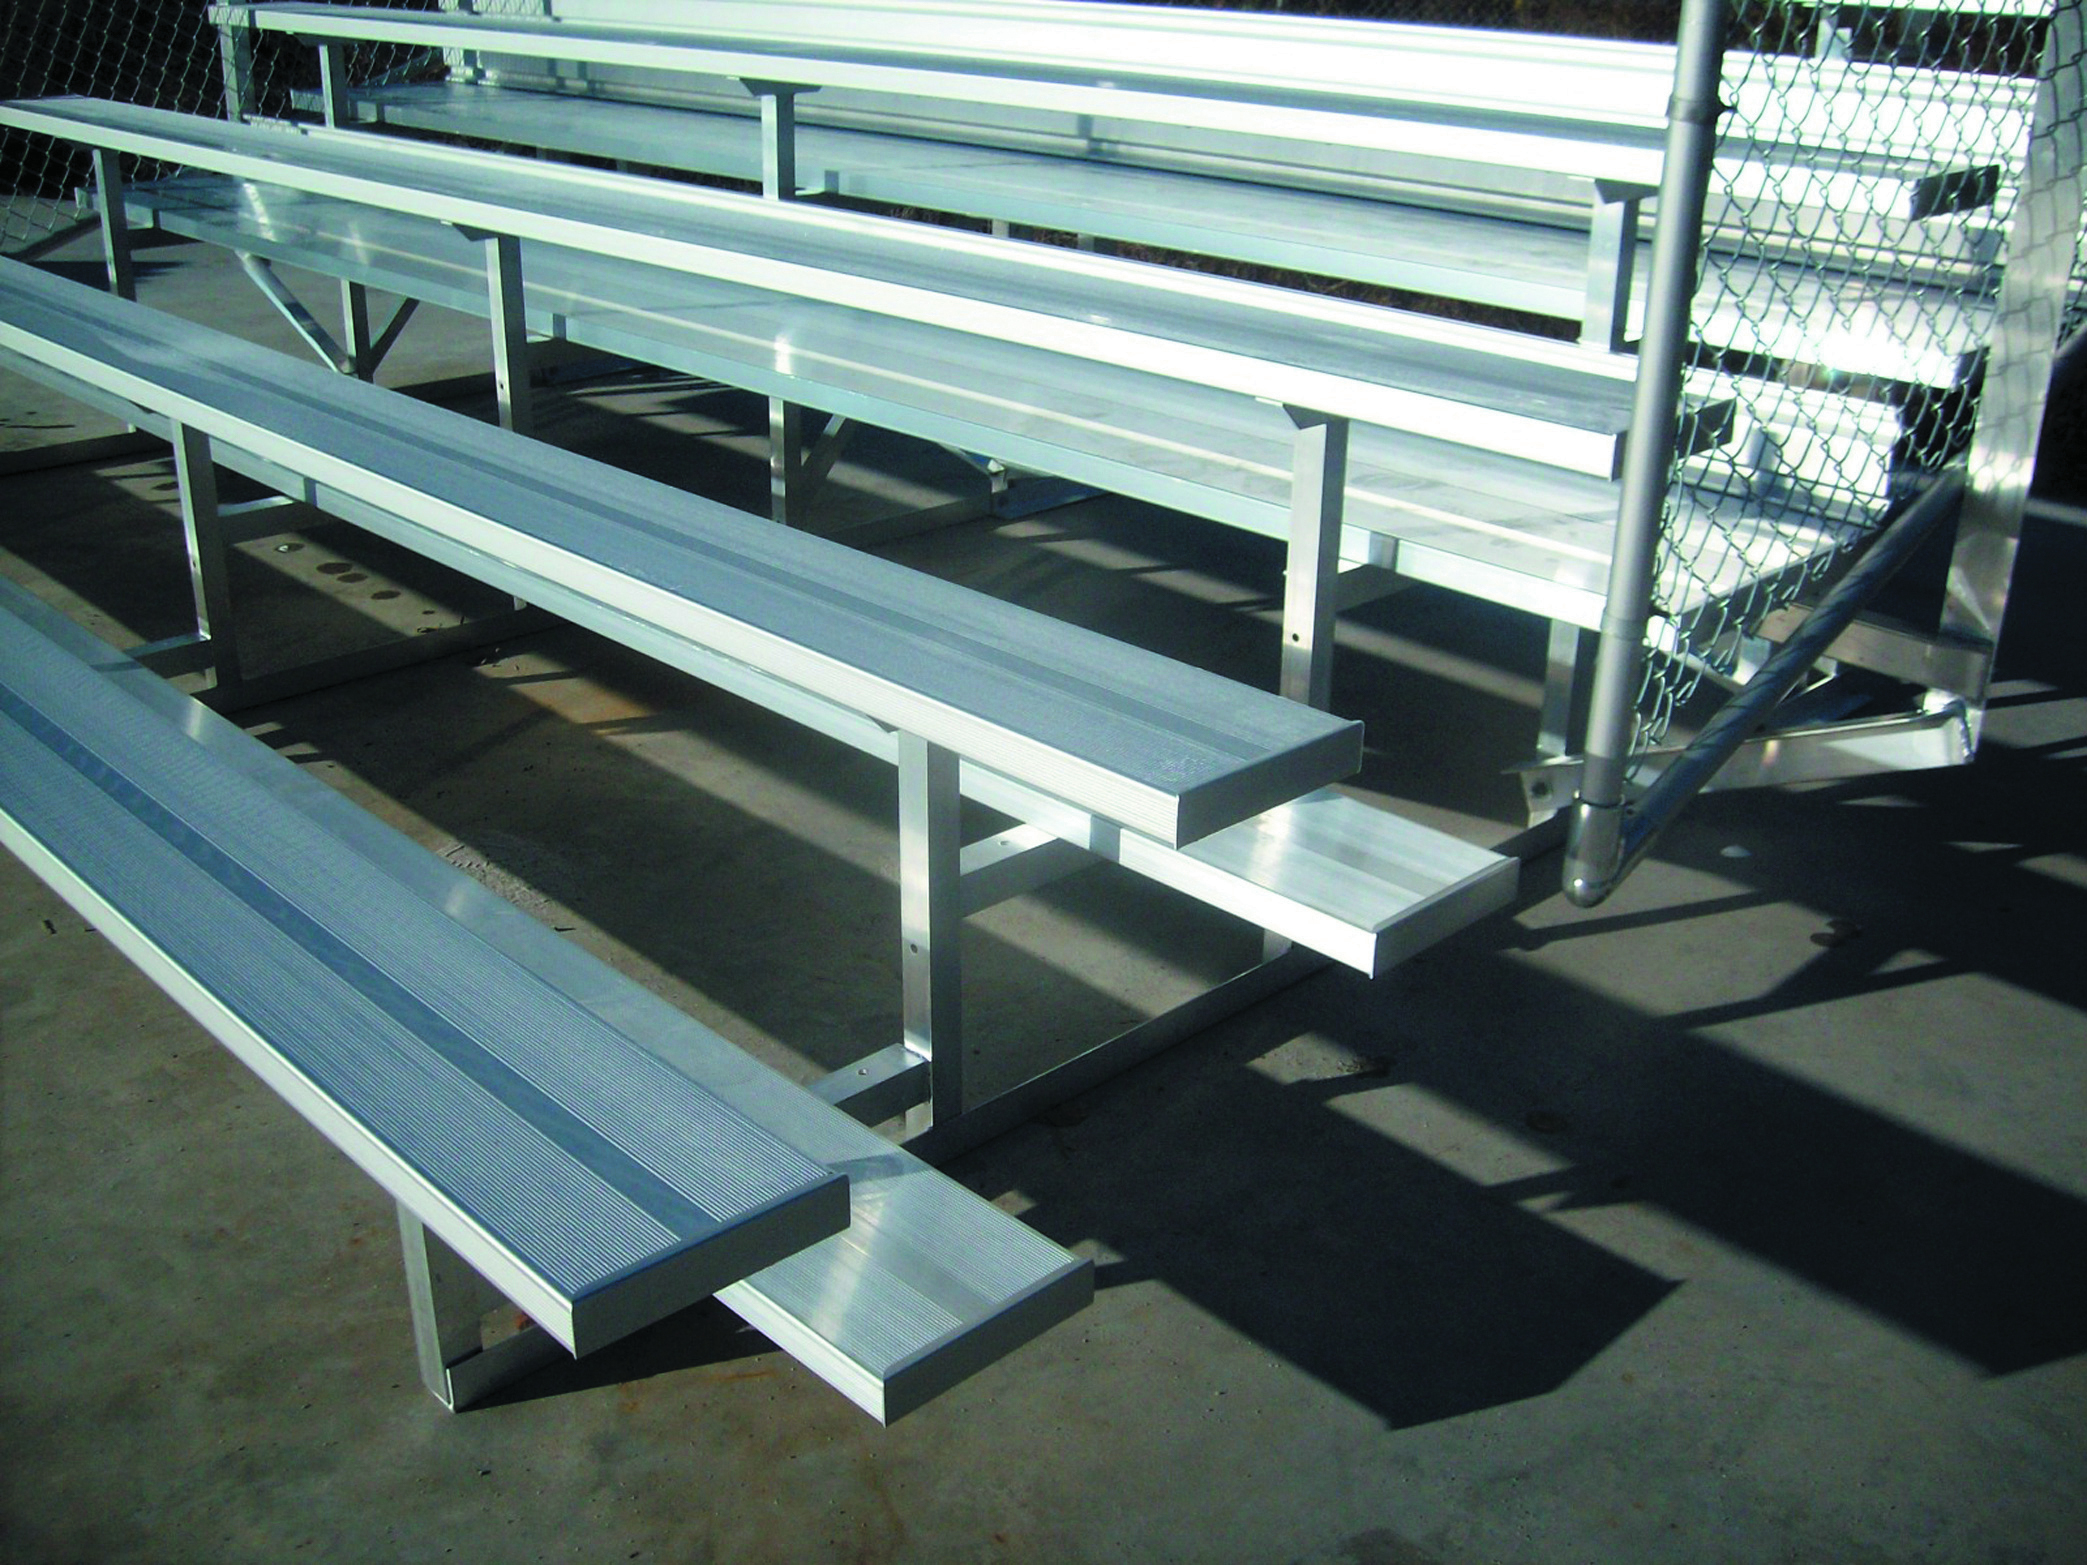 NR Series Models are available in many variations, Pictures can represent various available models in series, Double and single footboard options, Available with Vertical Picket or Chain-link Guardrails